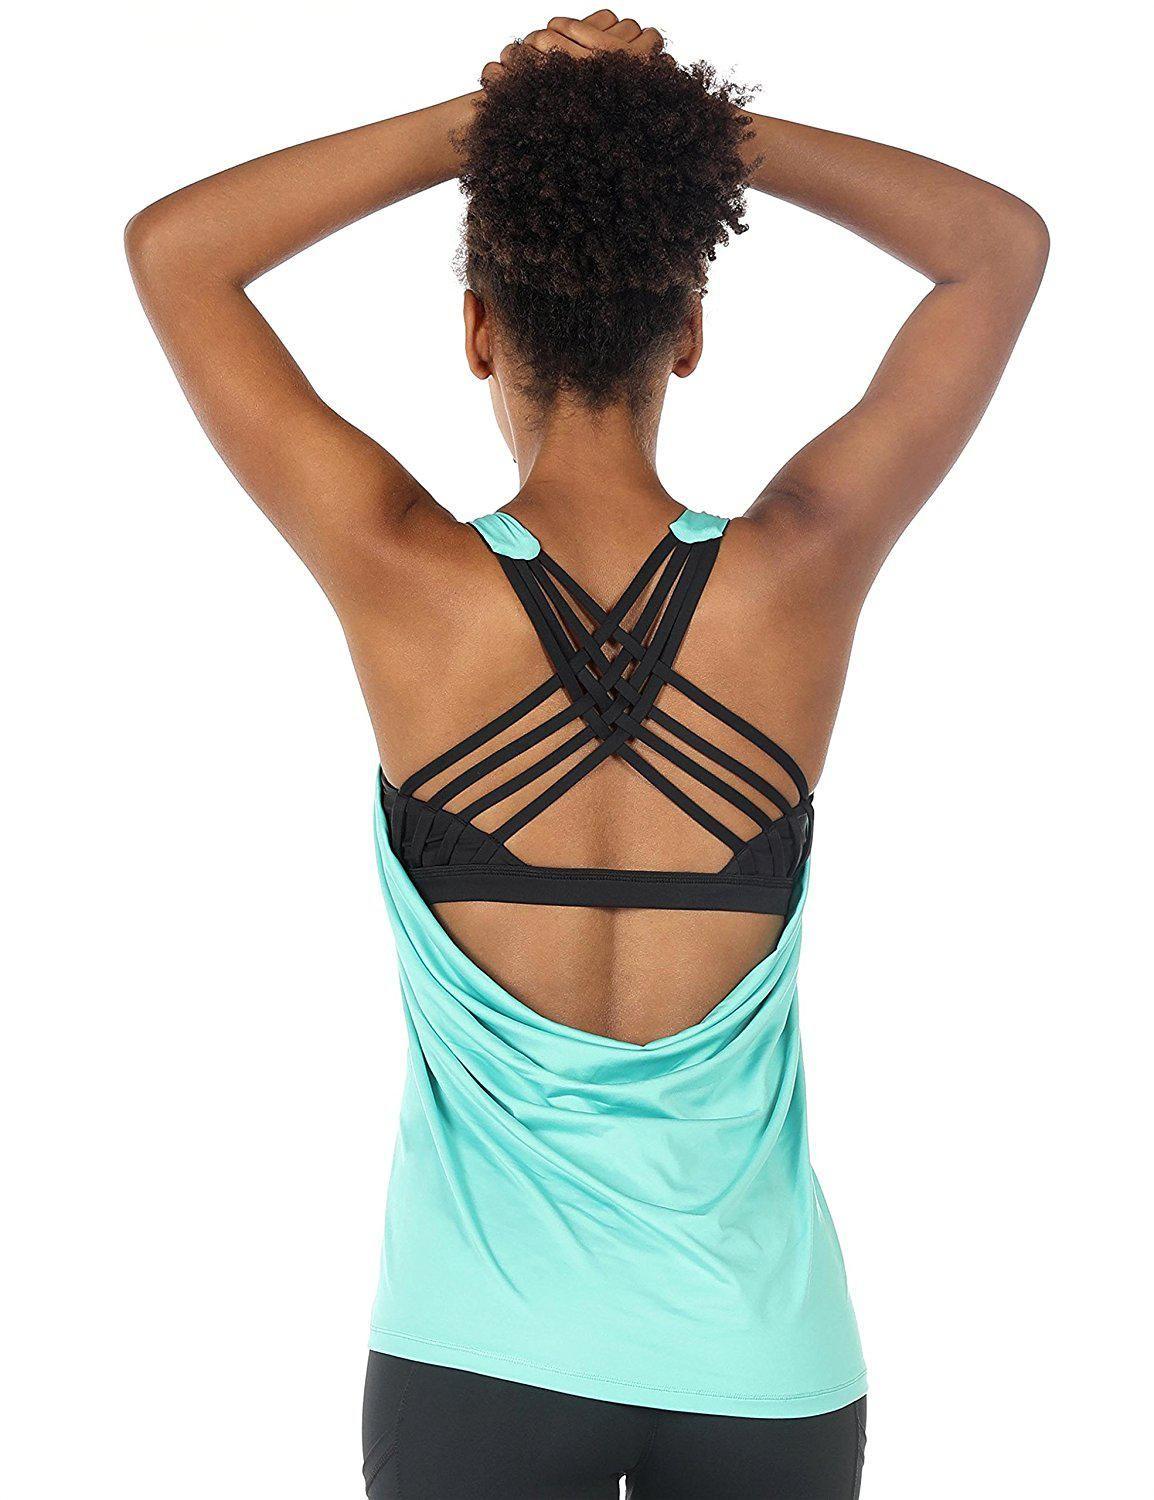 716c569bd9666 icyzone Yoga Tops Workouts Clothes Activewear Built in Bra Tank Tops for  Women at Amazon Womens Clothing store -- Amazon Affiliate link.